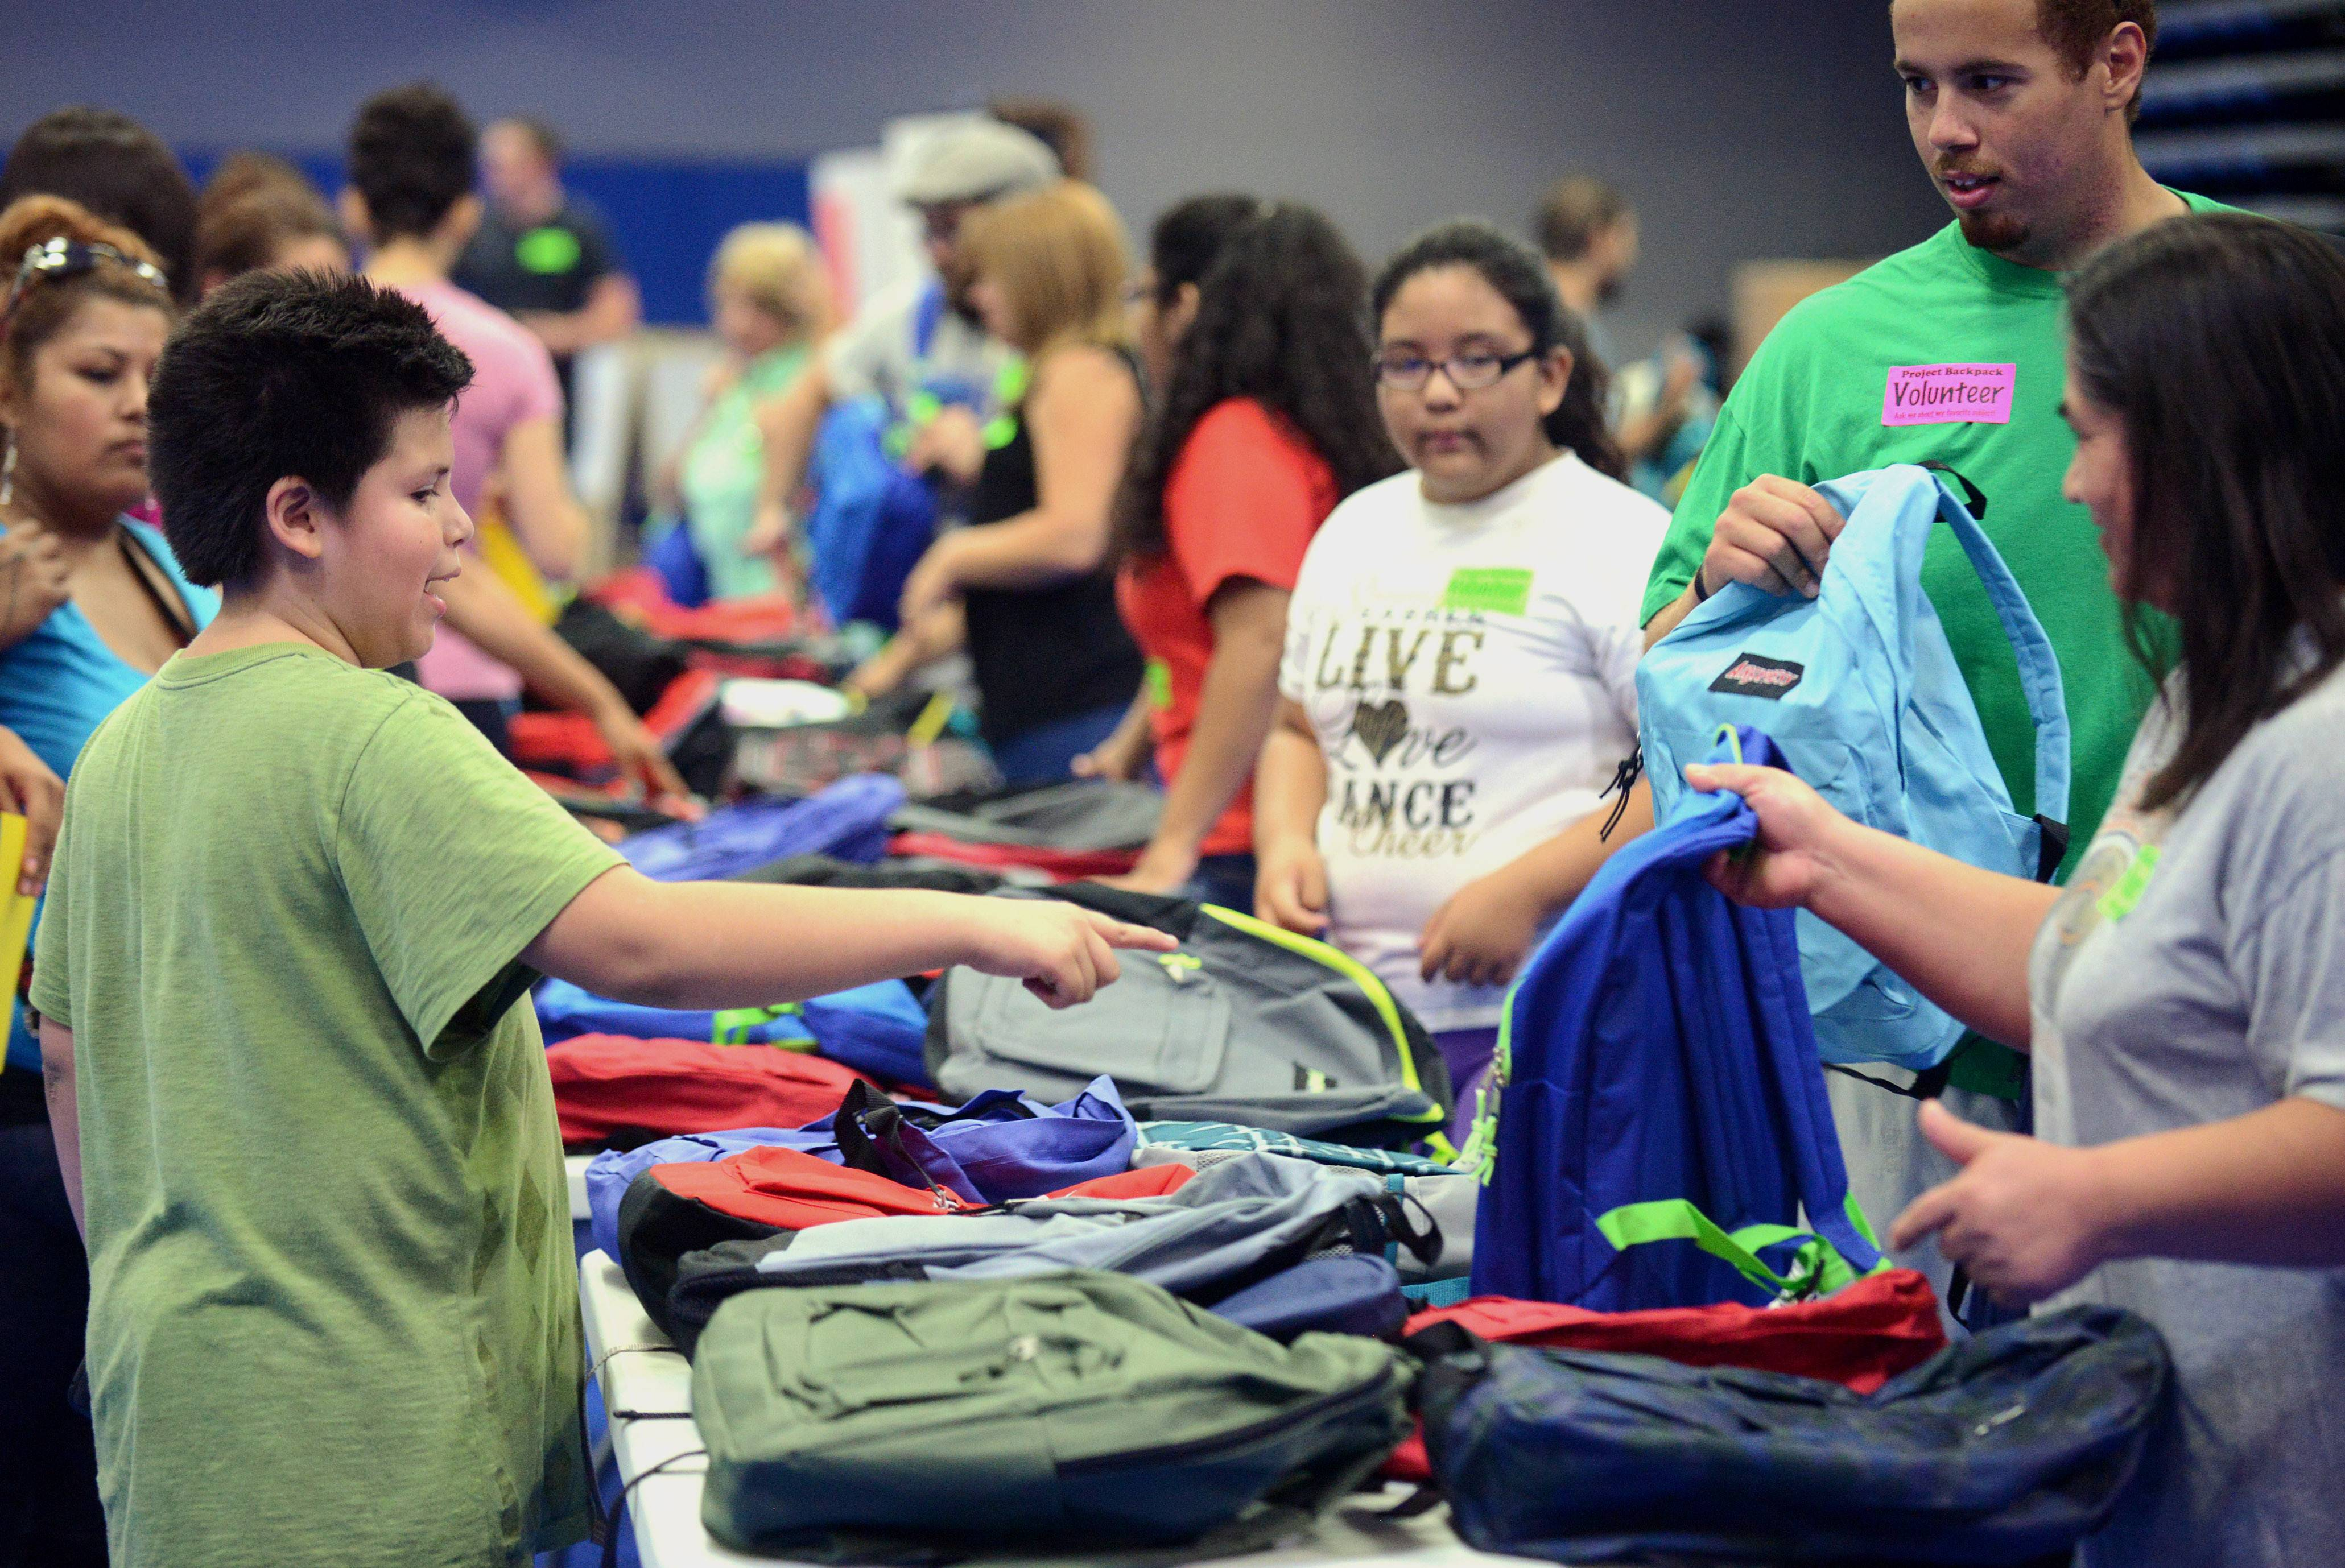 Moises Villa, 11, of Elgin picks the bag he wants at the Project Backpack giveaway event at Elgin Community College on Saturday. The free school supplies and backpacks were on a first-come, first-served basis to local students. Moises is going into sixth grade this fall.